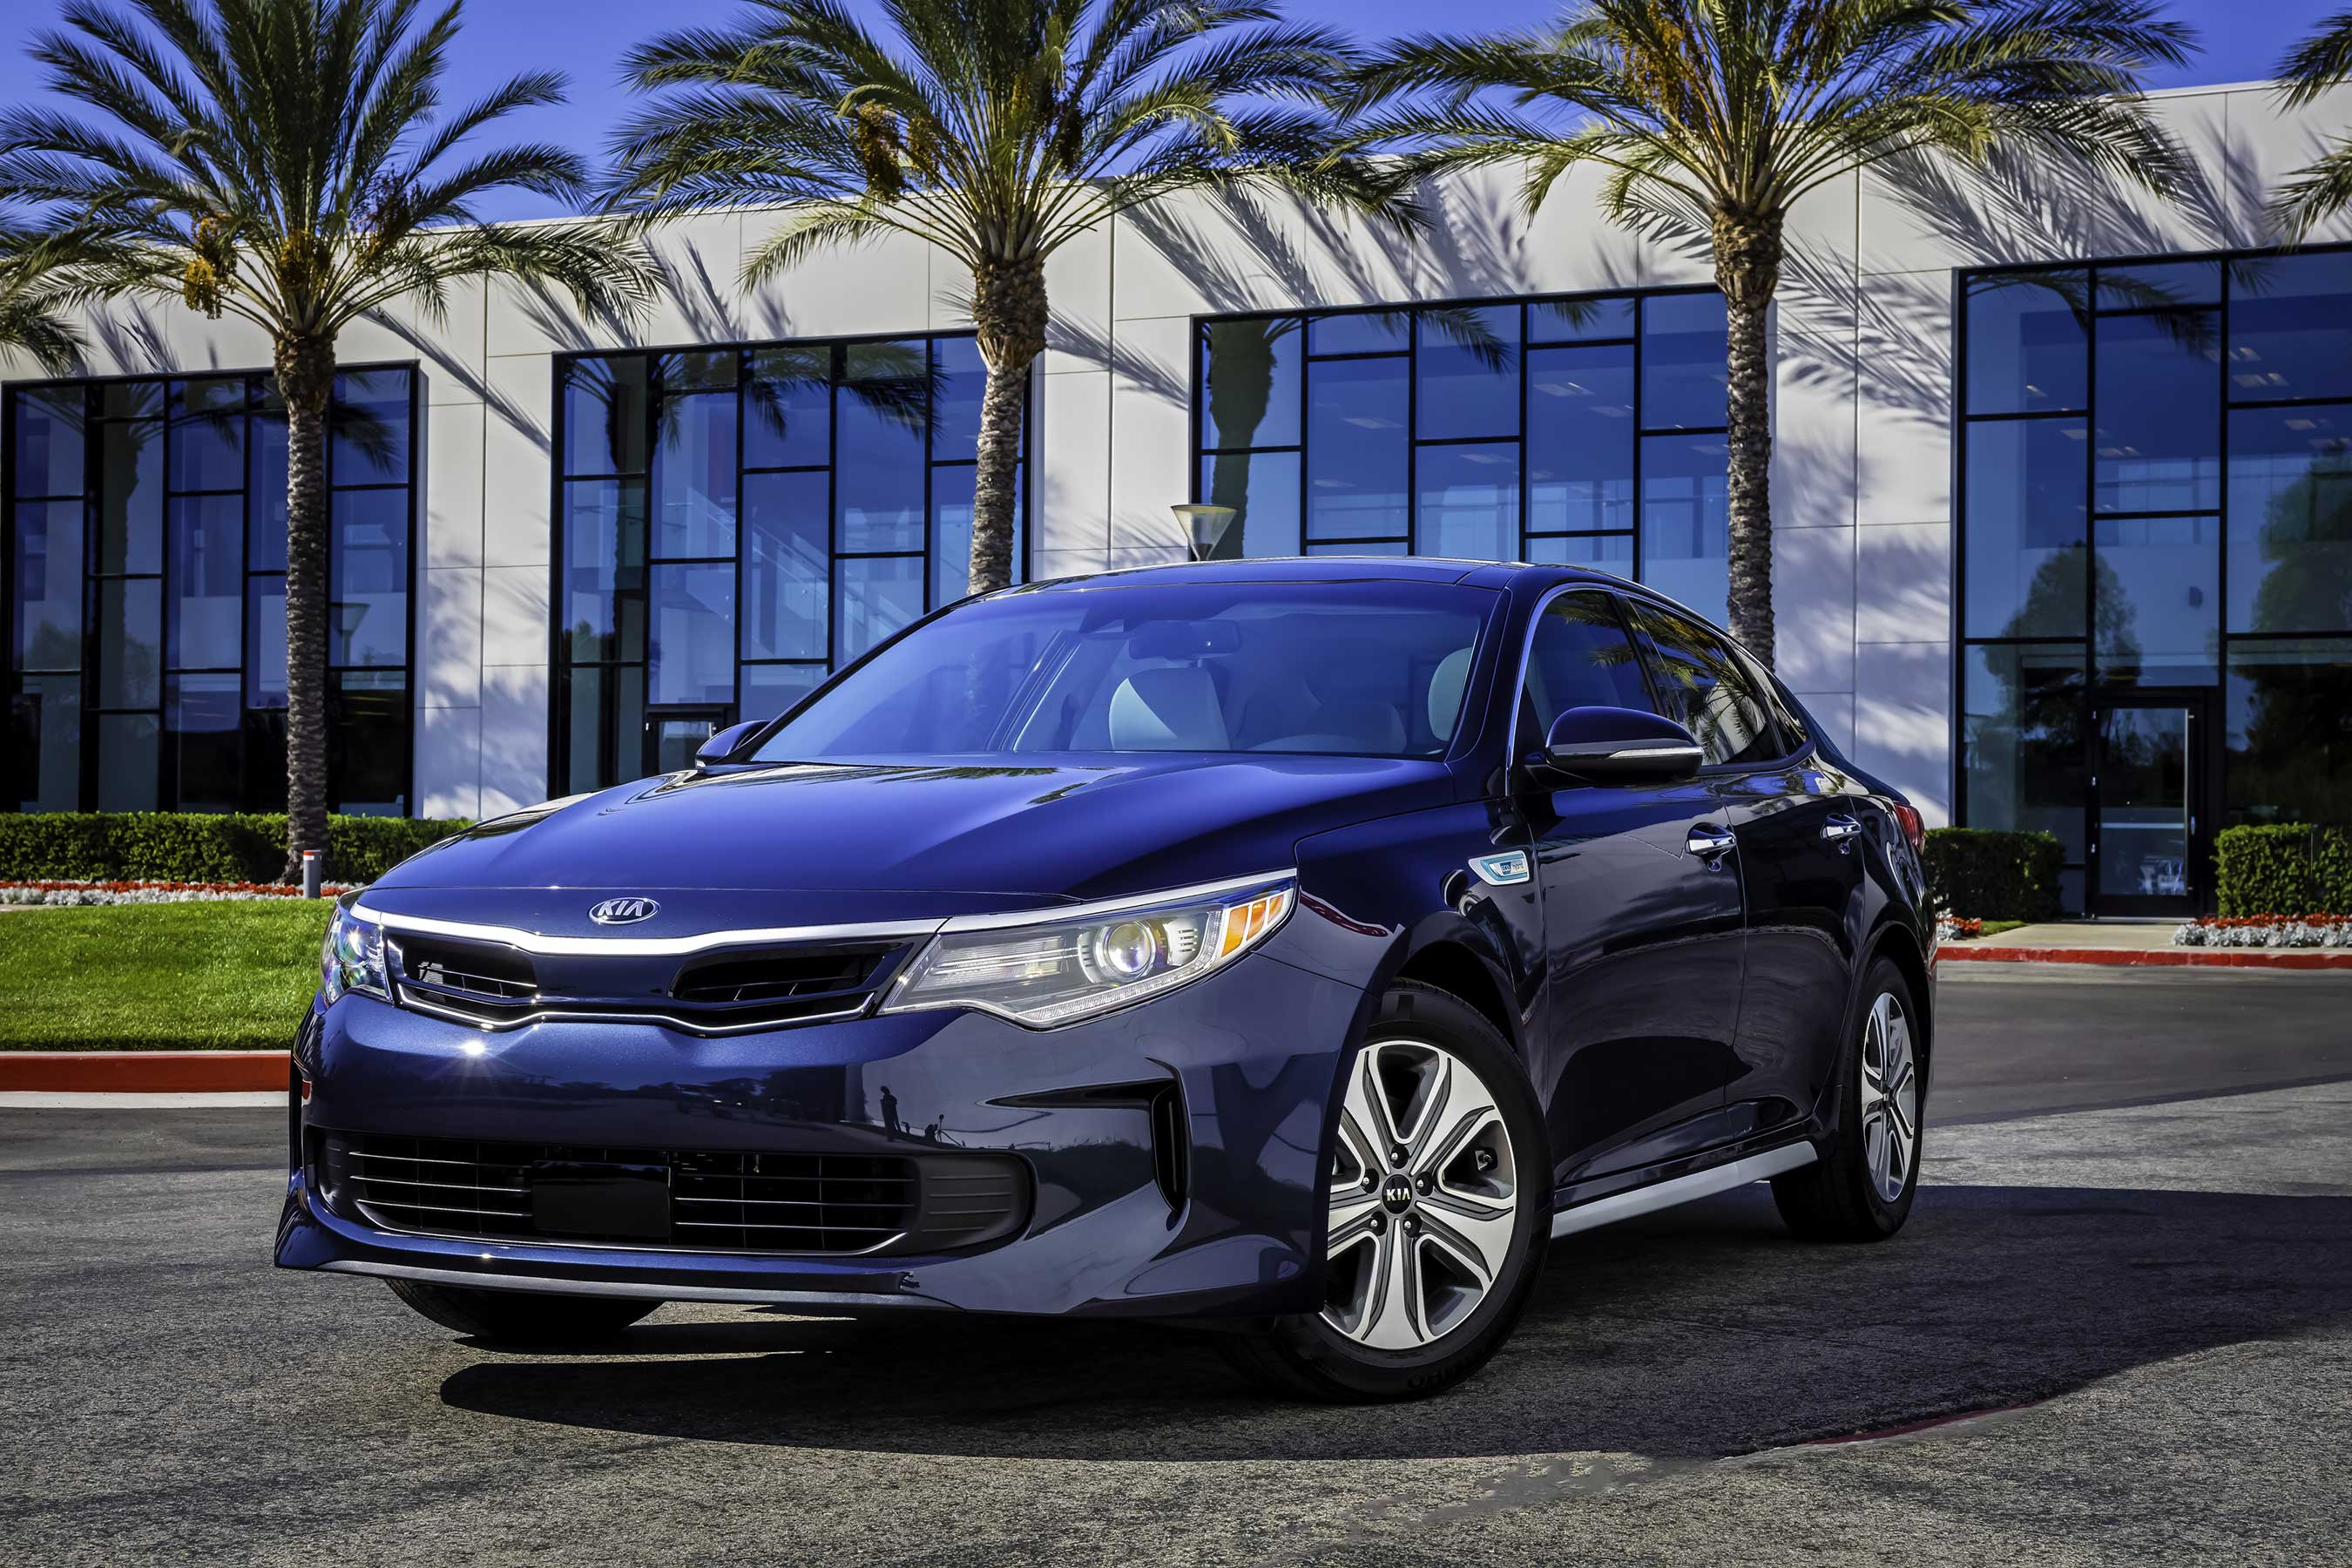 The all-new 2017 Kia Optima Hybrid blends modern styling and a premium driving experience with an intense focus on efficiency.